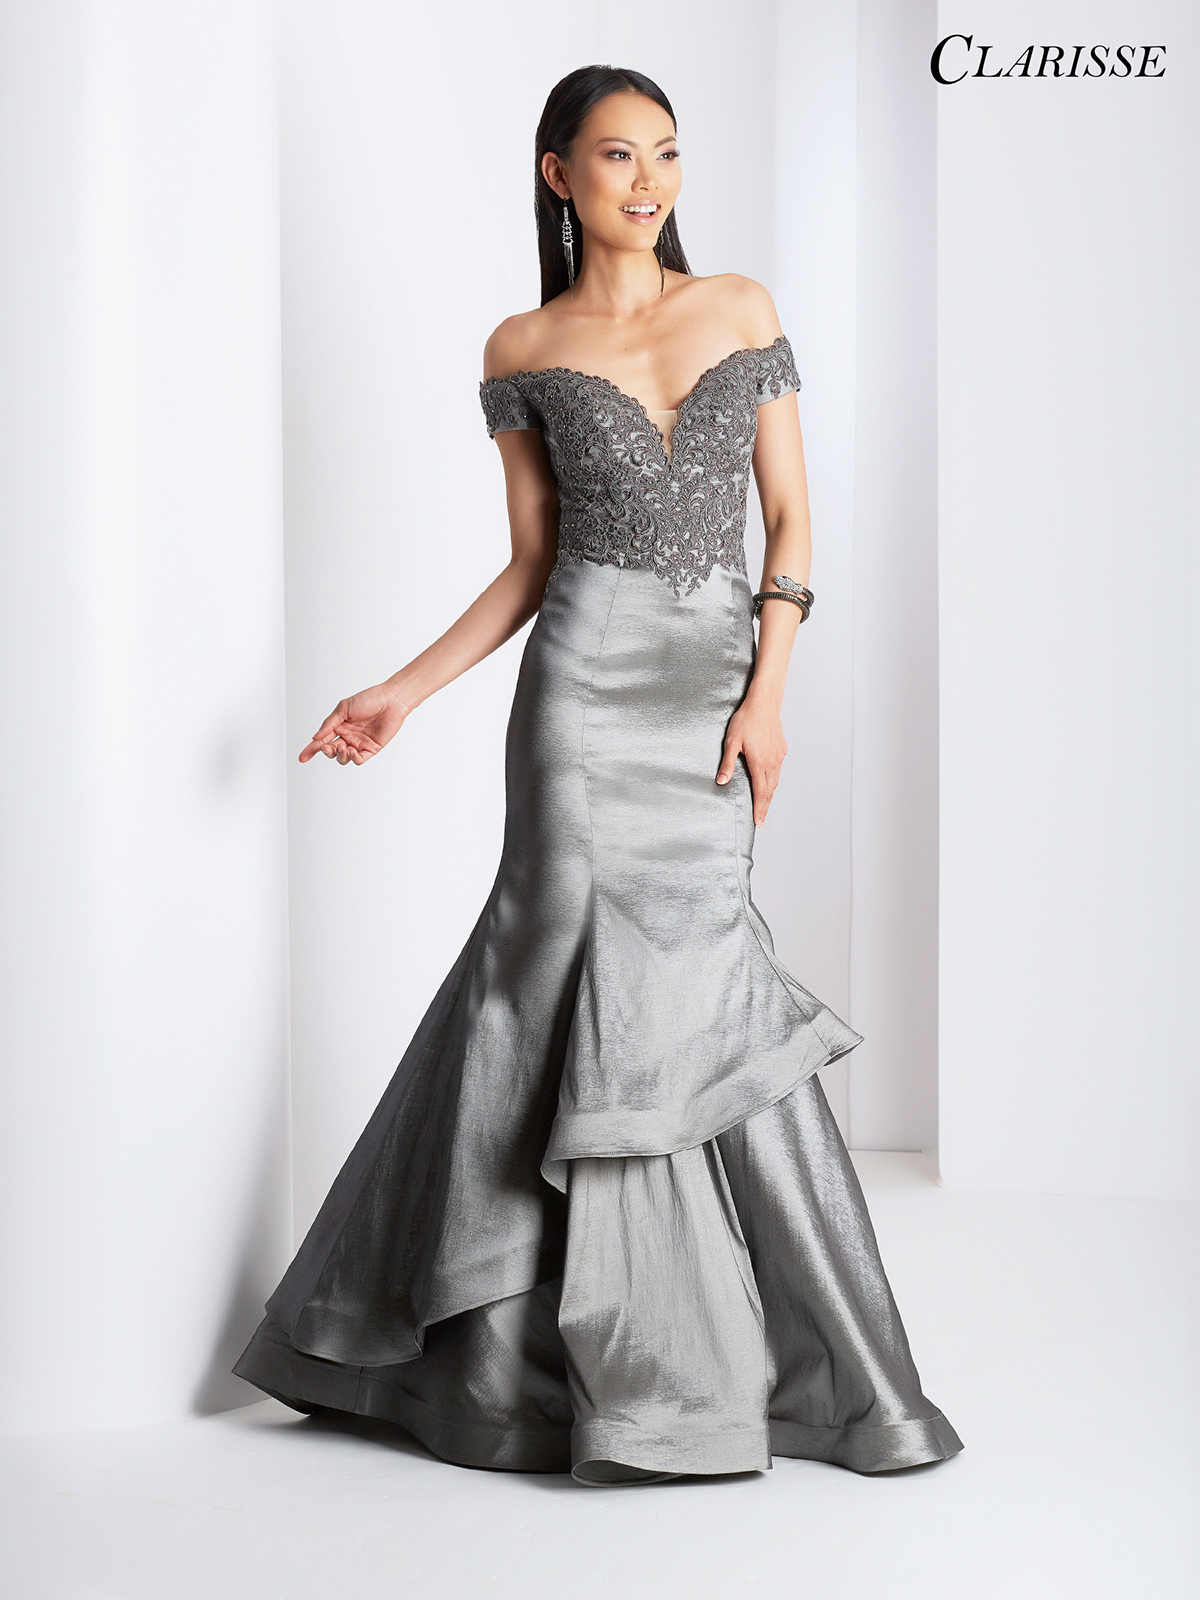 2018 Prom Dress Clarisse 3476 | Promgirl.net